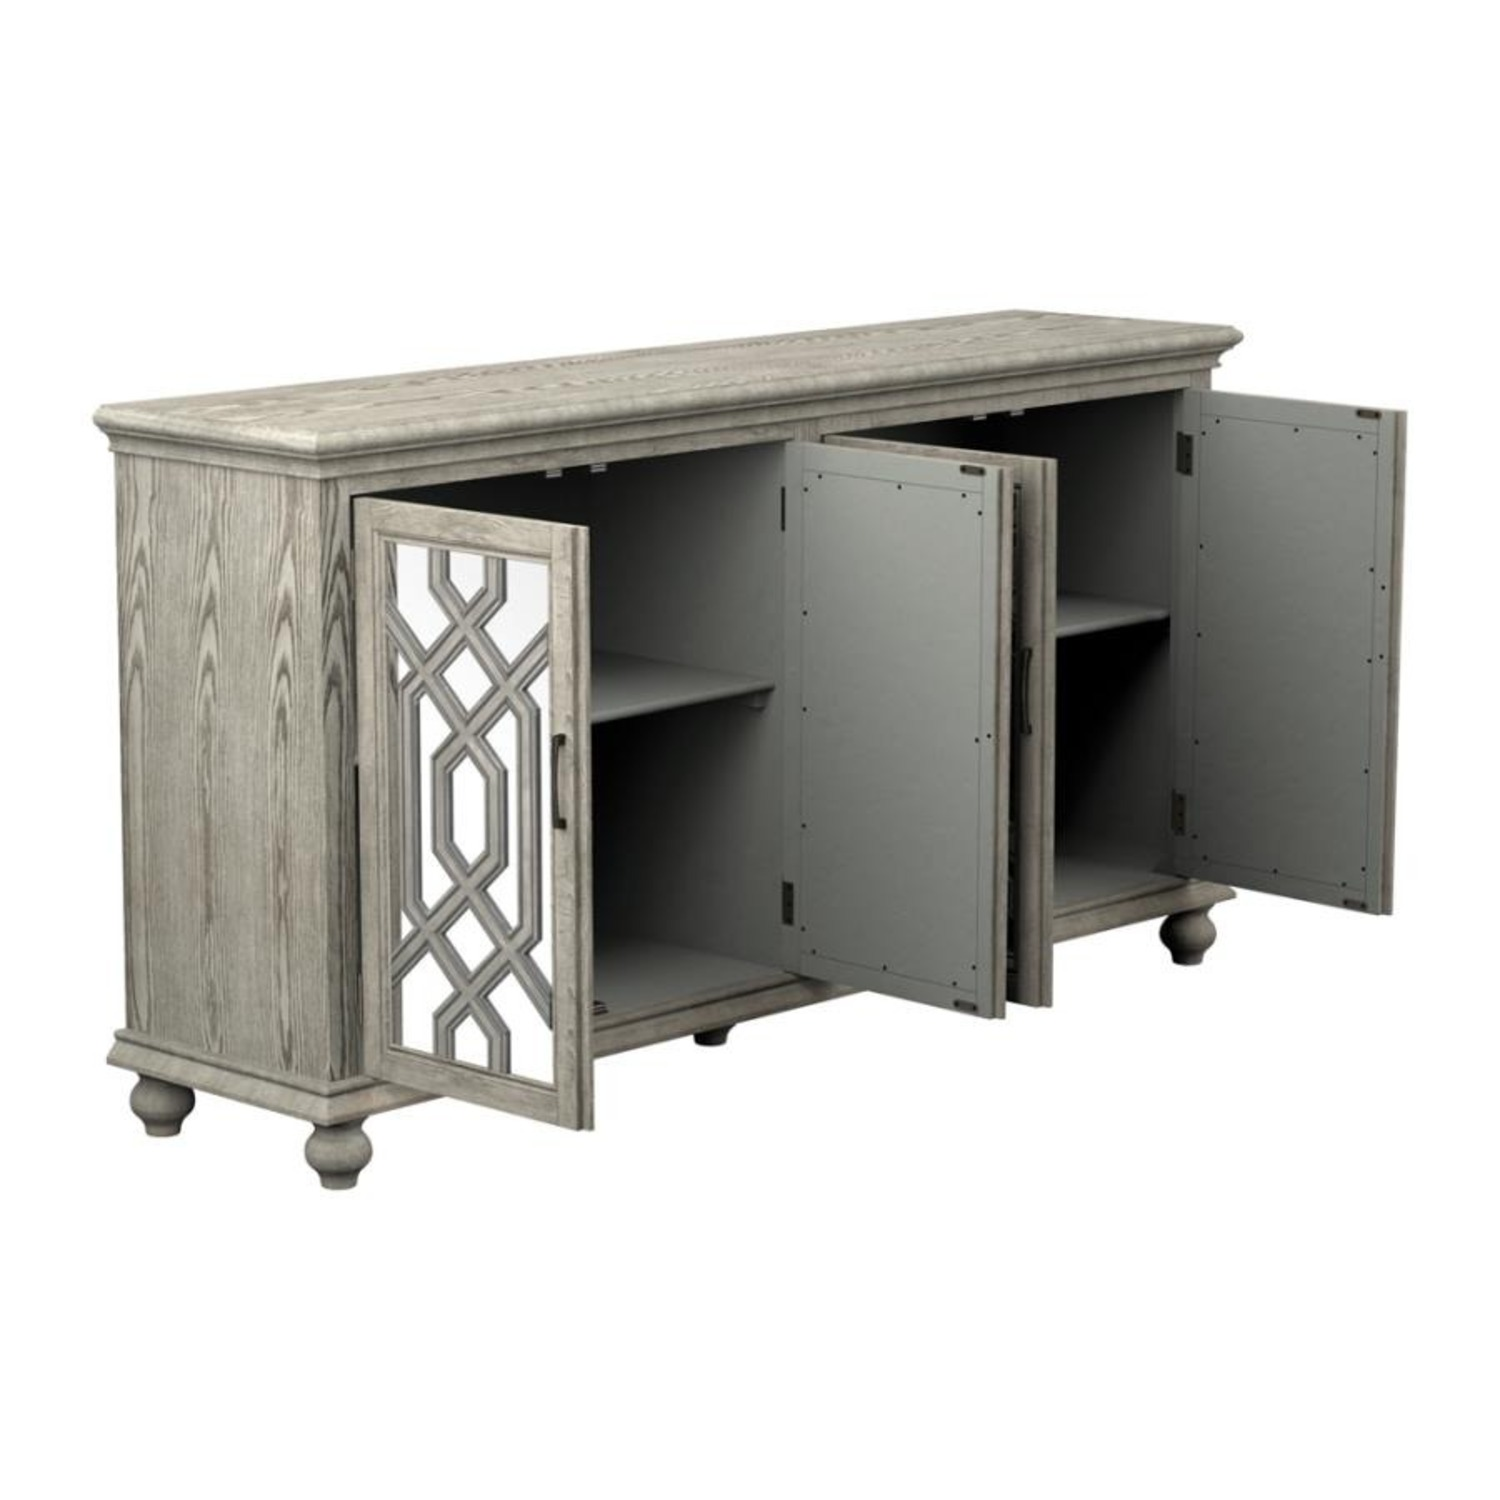 Accent Cabinet In Antique White W/ Bronze Details - image-1